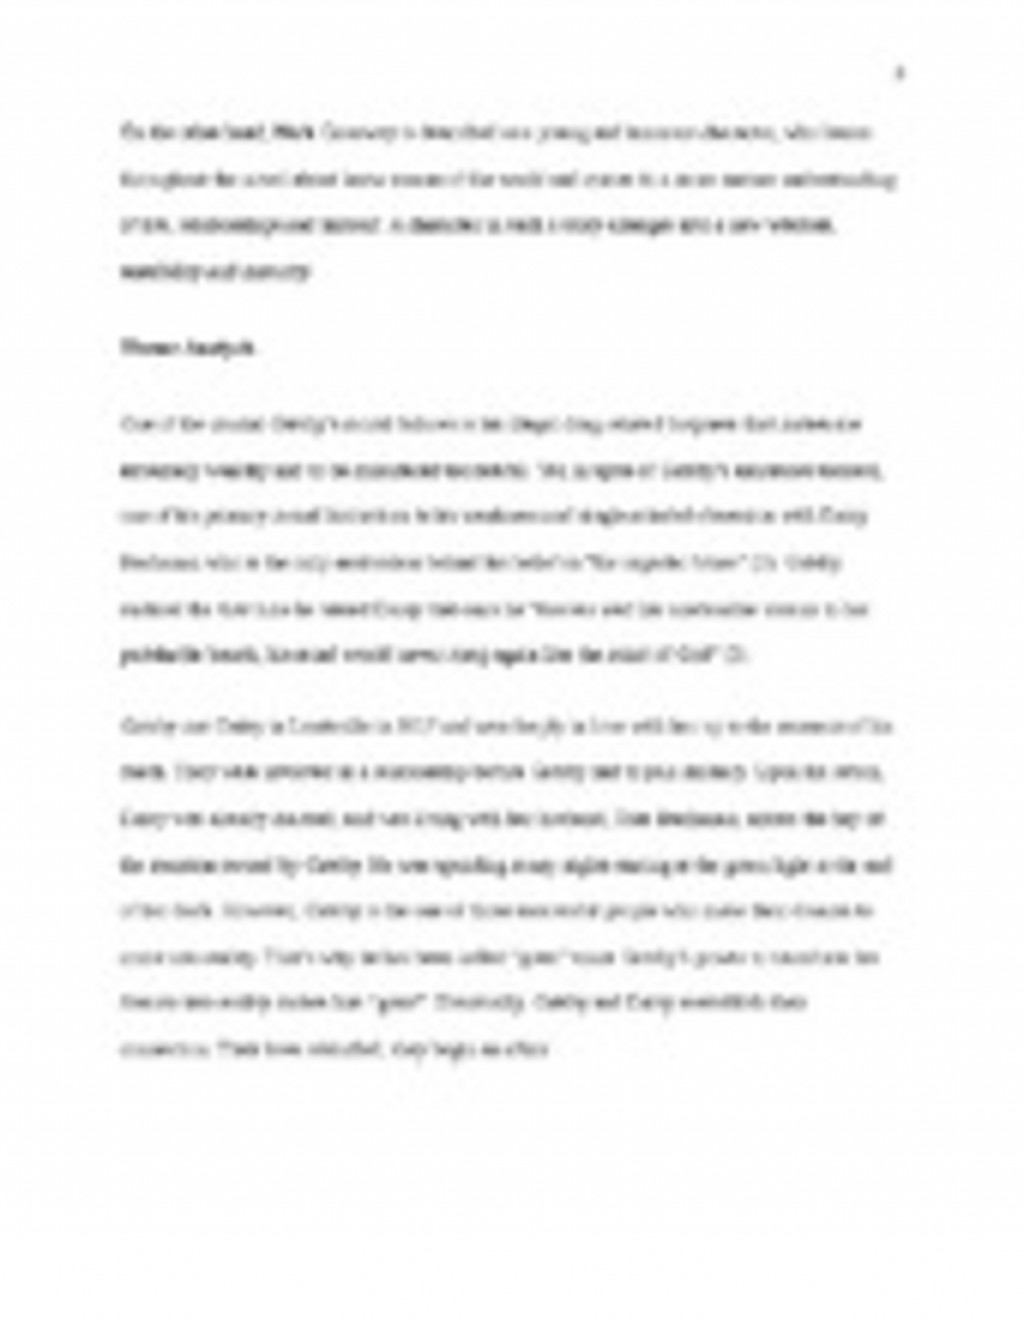 005 The Great Gatsby Themes Essay Example Stirring Theme Analysis And Symbolism Large